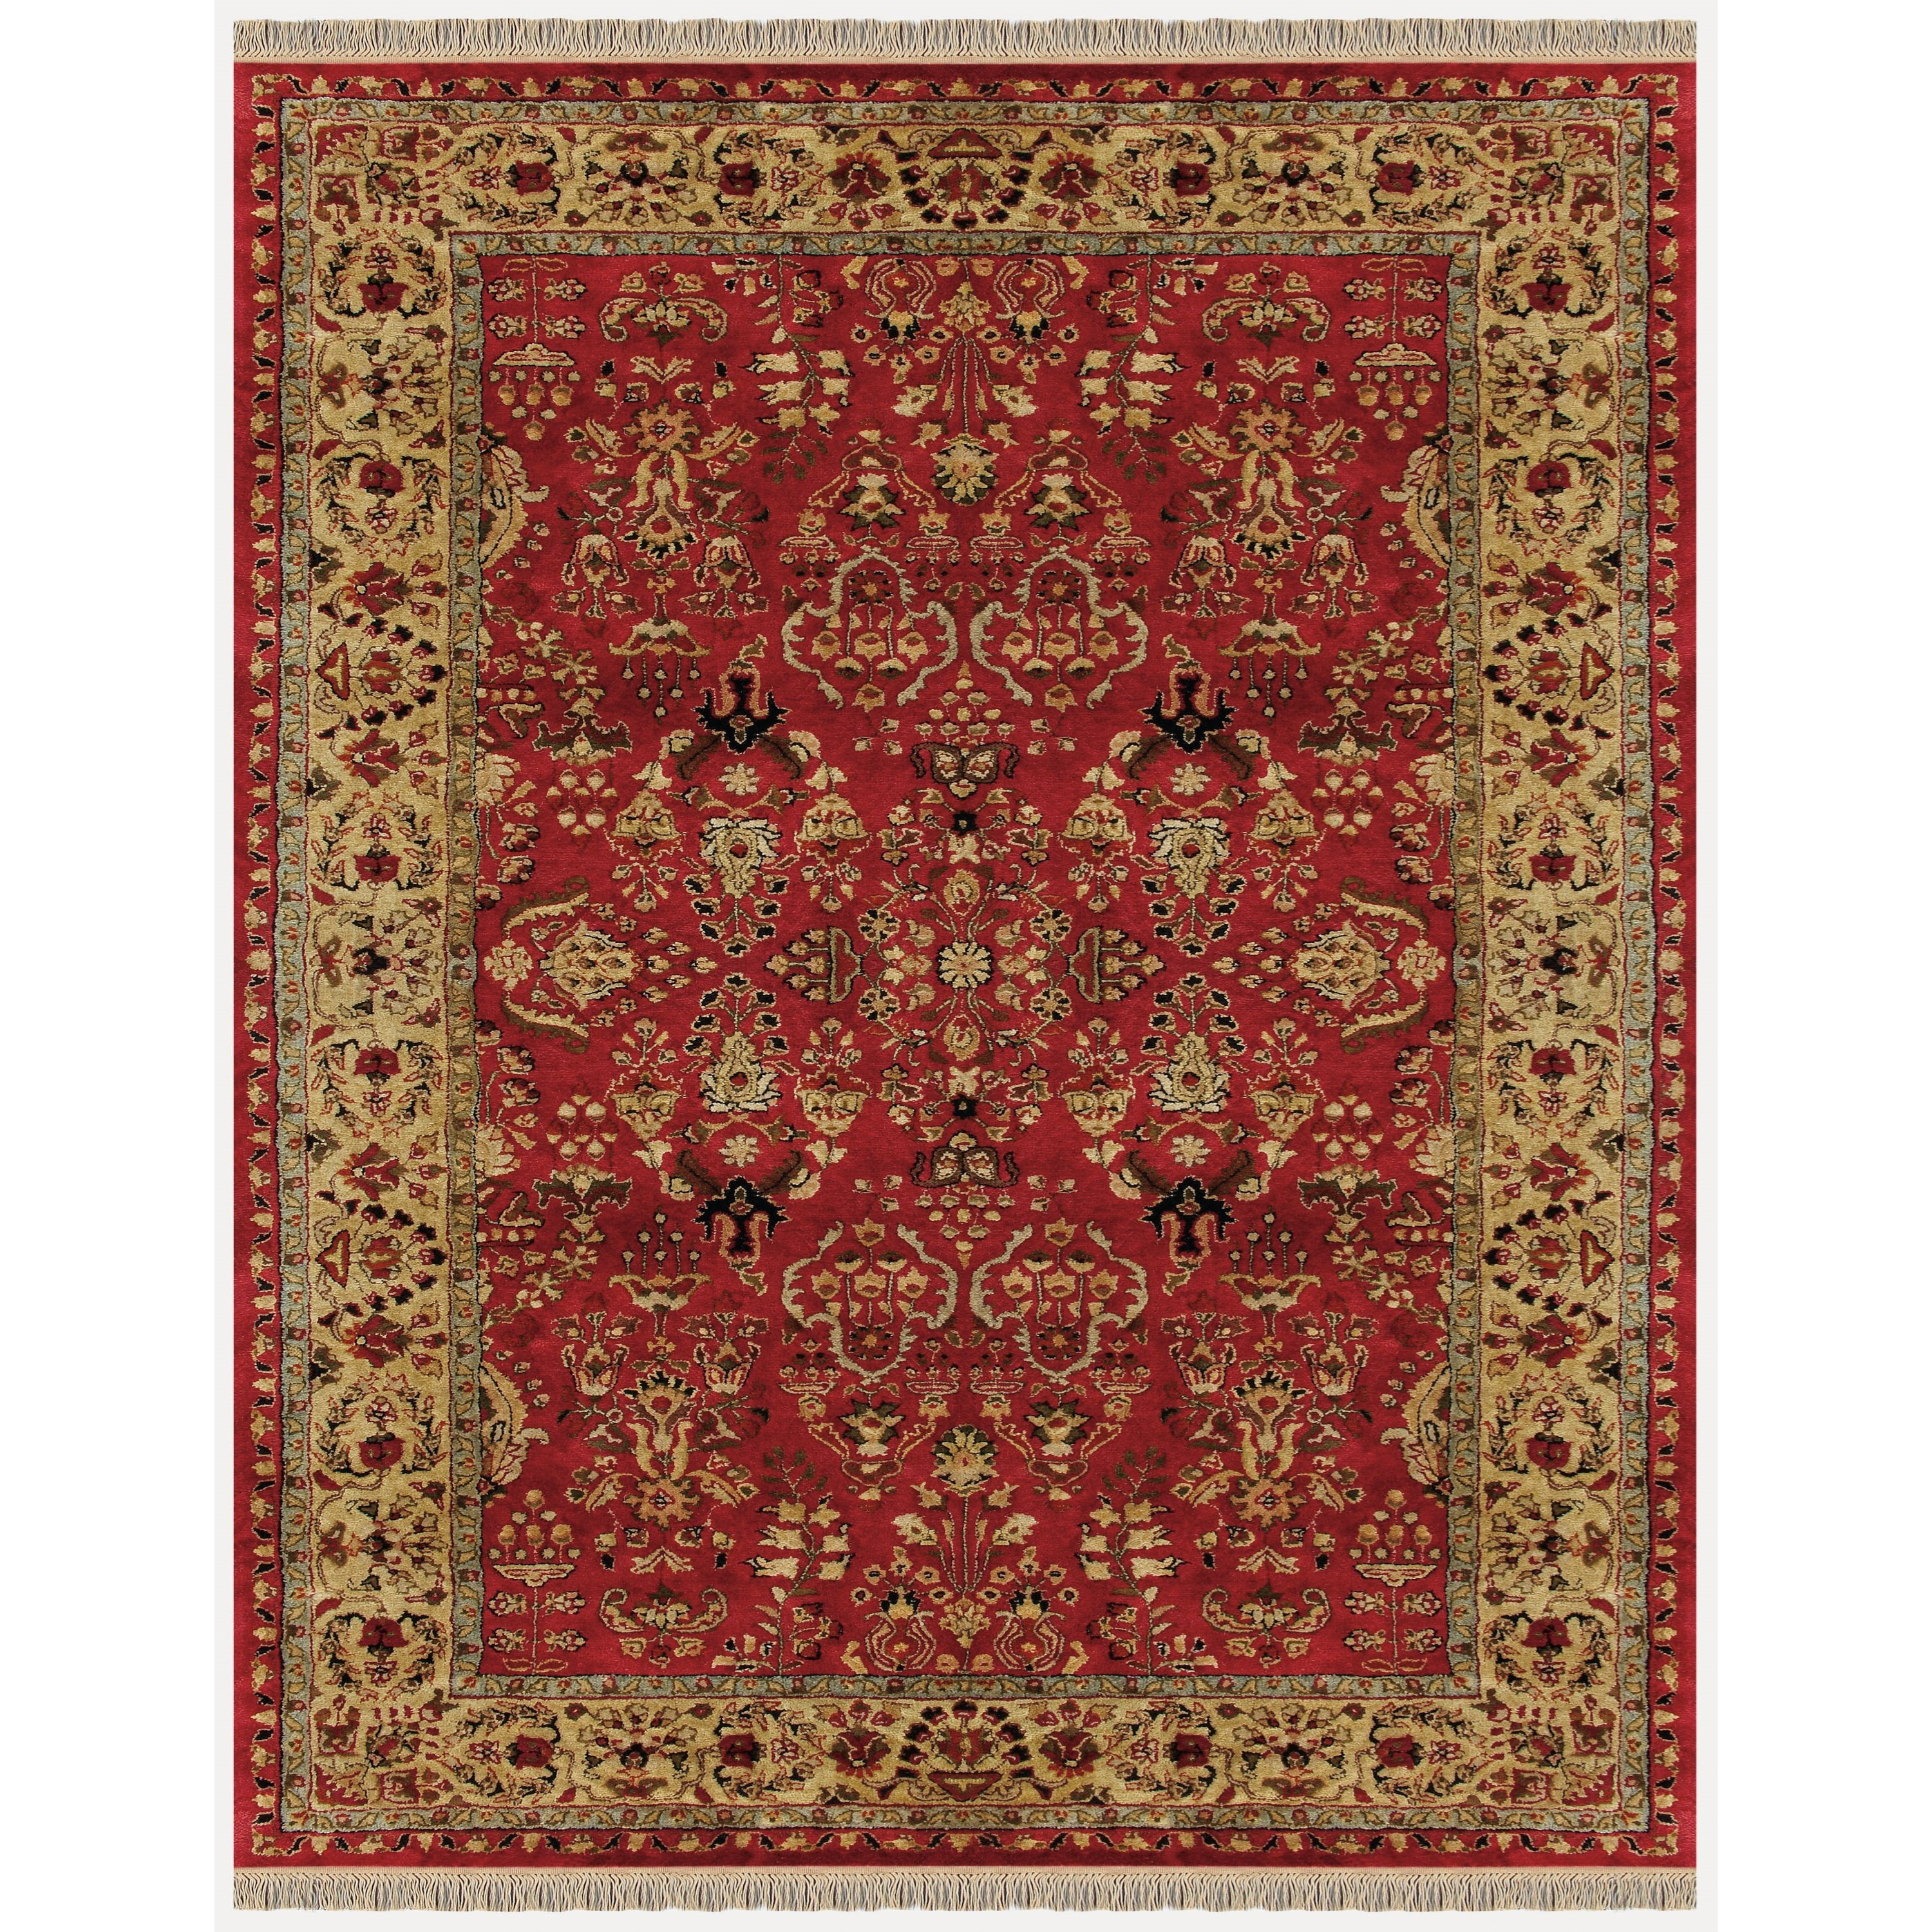 "Red/Light Gold 9'-6"" x 13'-6"" Area Rug"